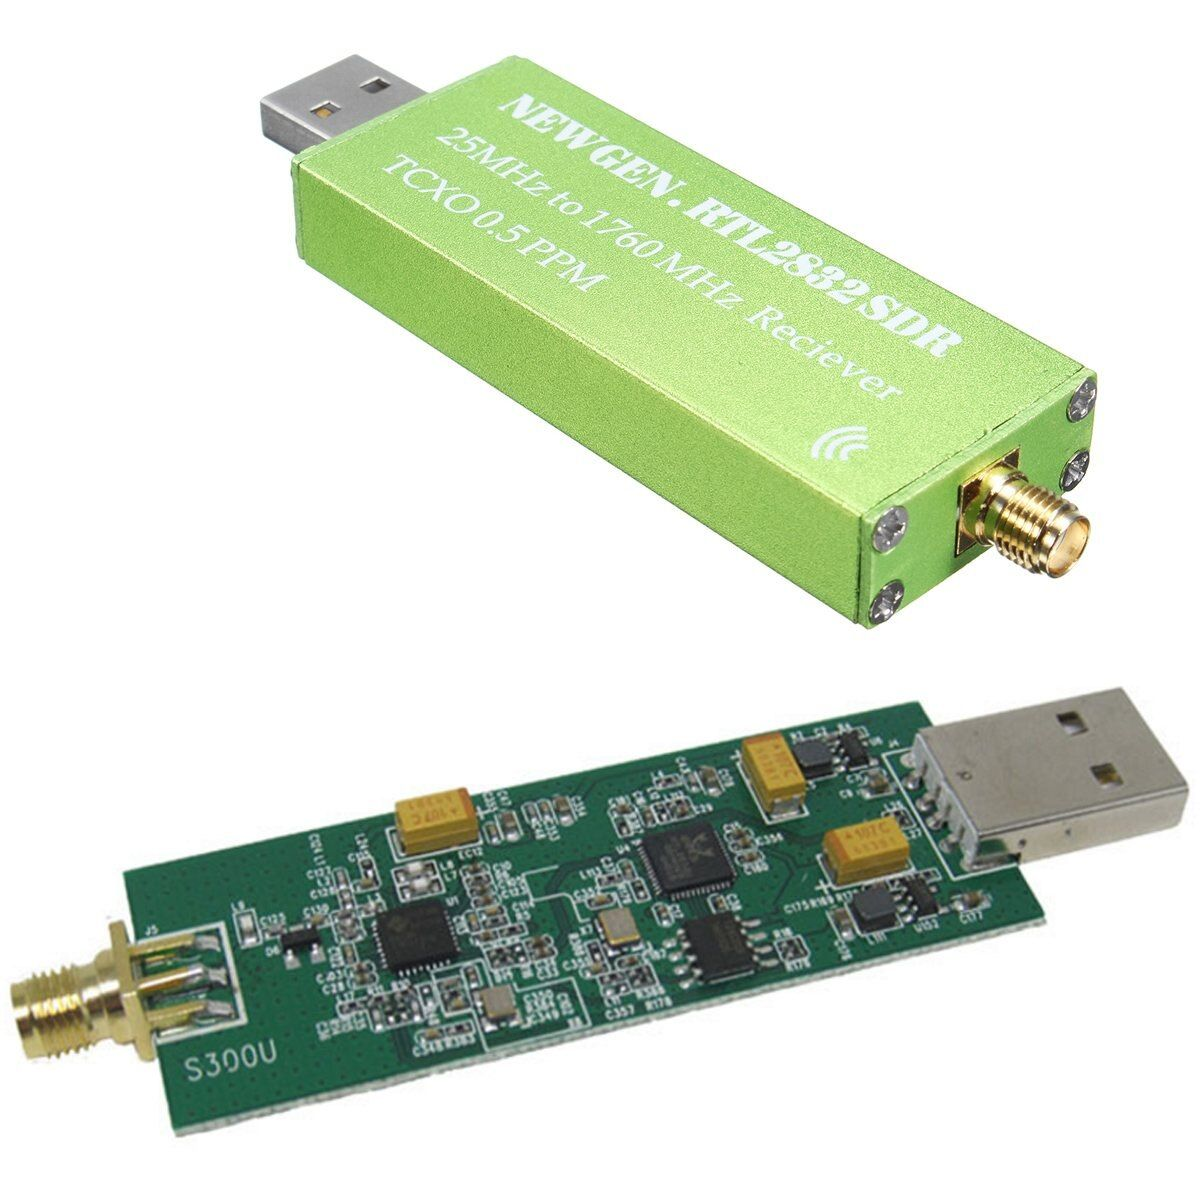 25MHZ to 1760MHZ RTL SDR Receiver Support AM/NFM/FM/DSB/USB/L RTL2382U Wireless Current Receiver New Generation RTL SDR Receiver